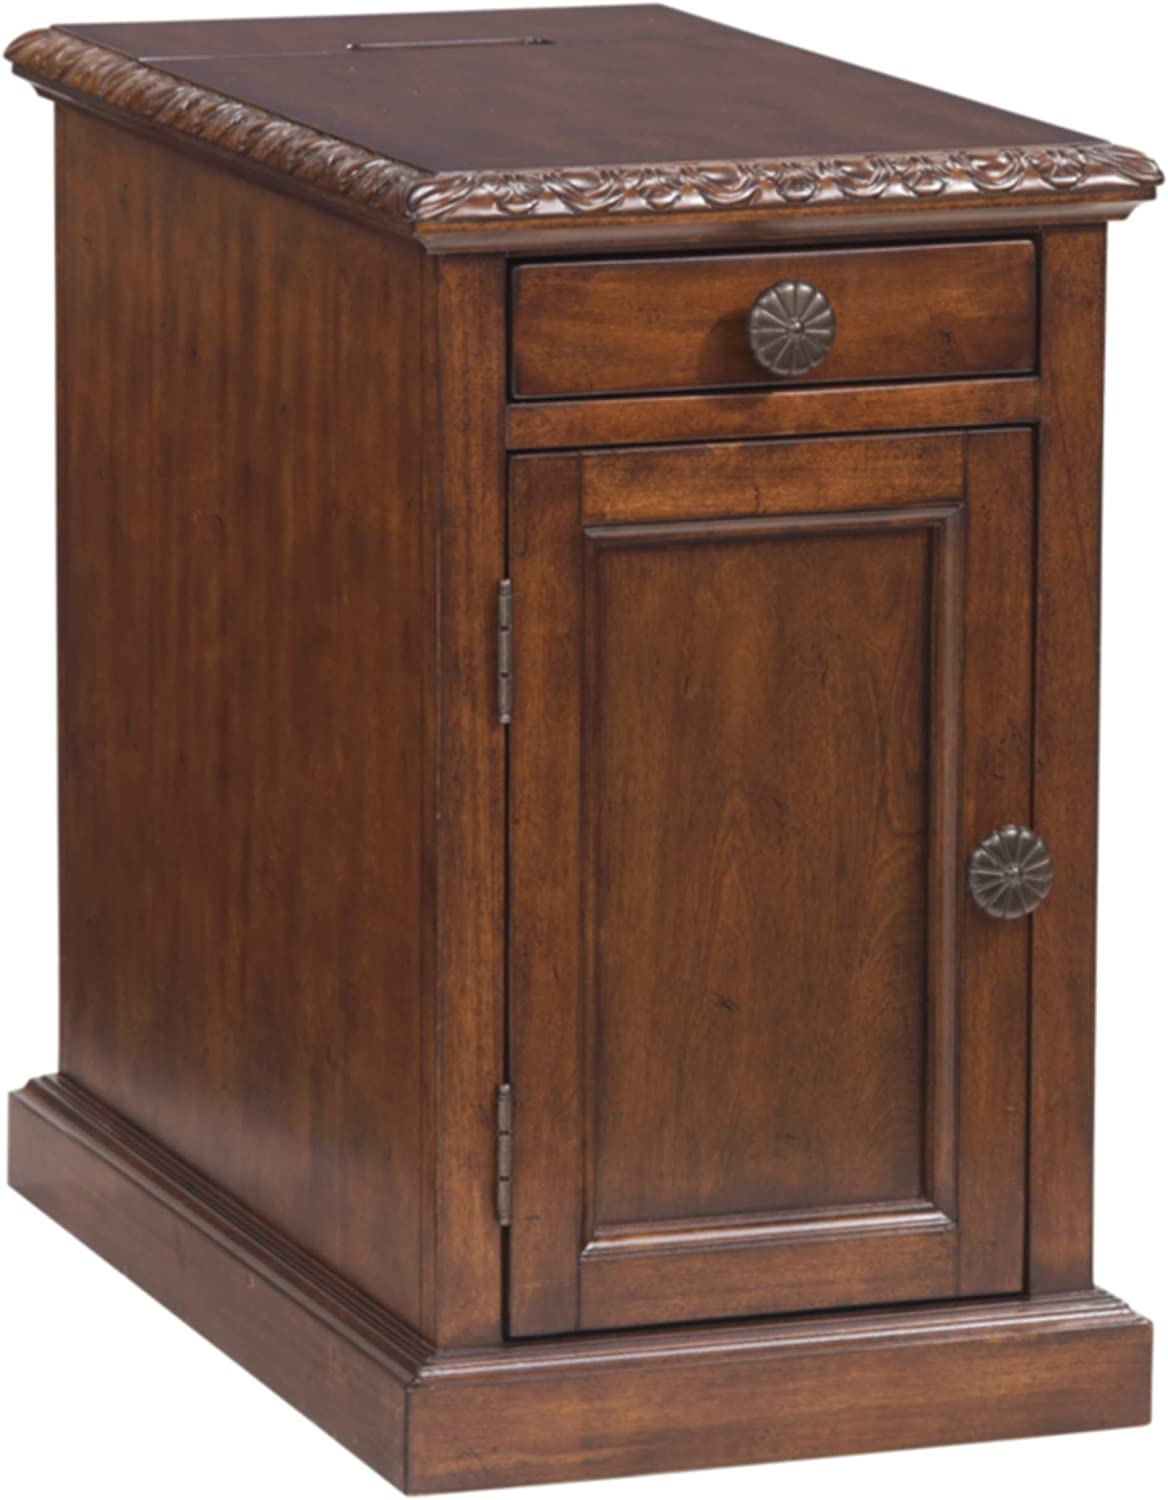 Signature Design by Ashley Laflorn Chairside End Table with USB Ports & Outlets - Dark Brown